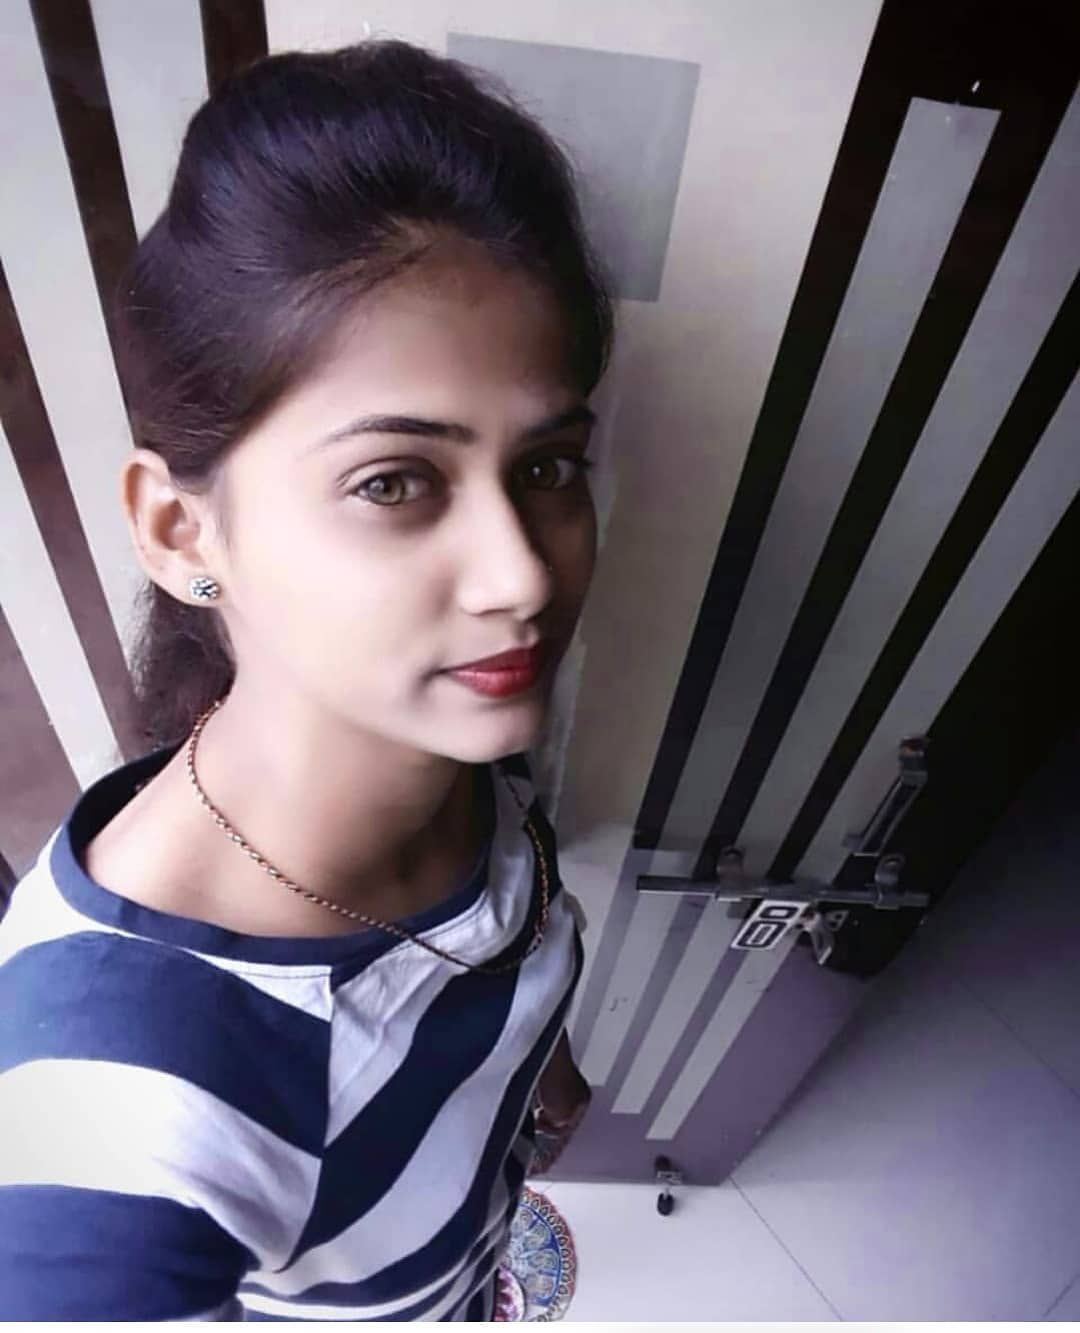 Arti Cute Girl : Image, Contain:, Person,, Stripes,, Selfie, Closeup, Beautiful, Image,, Number, Friendship,, Stylish